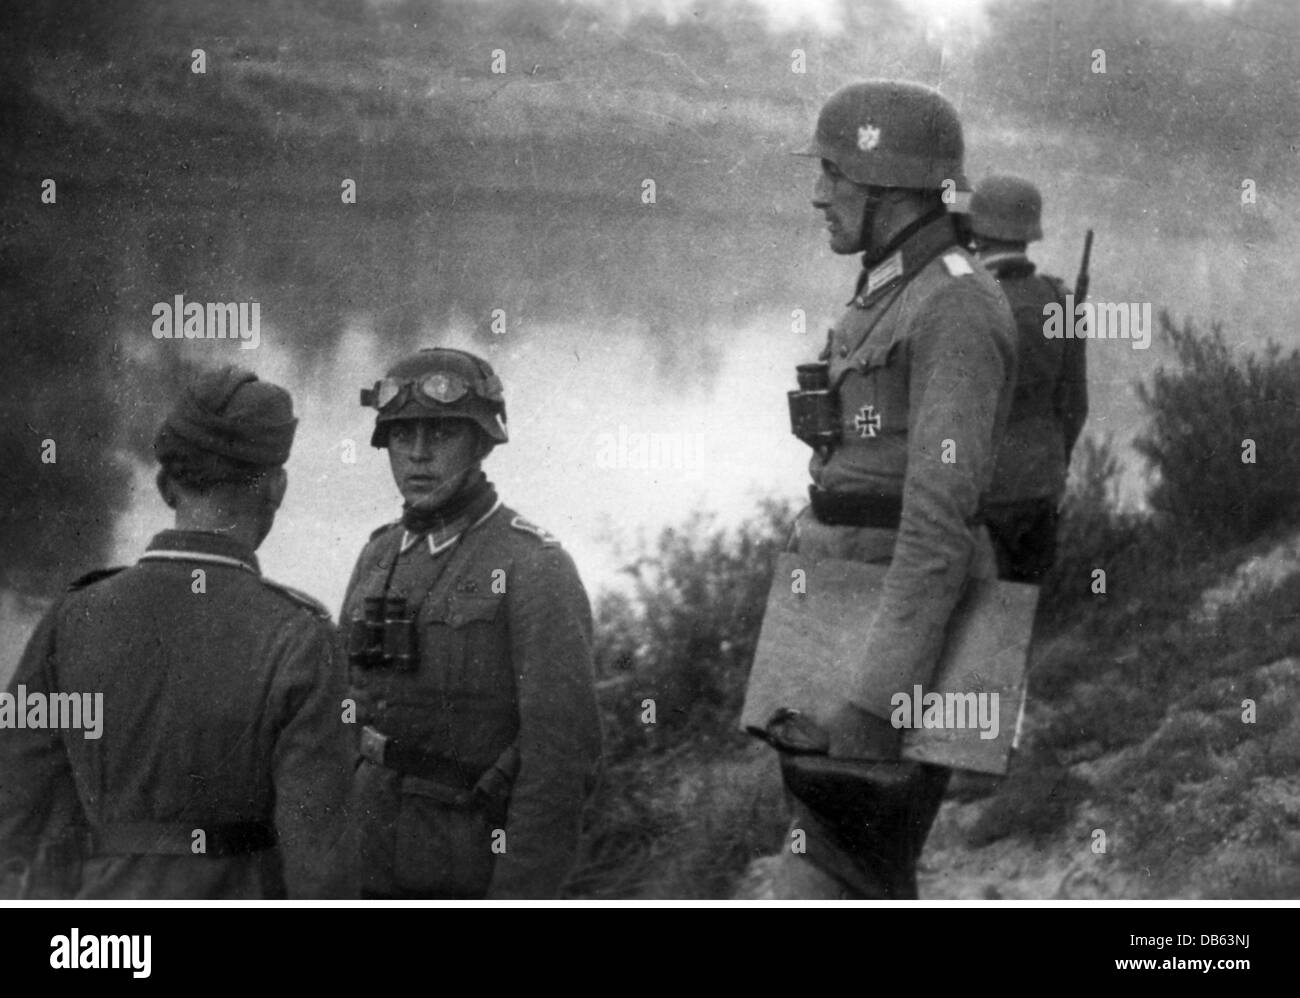 taking a look at operation barbarossa At the start of barbarossa and the continuation war, german troops from norway moved and secured the area till the finnish capitulation in mid-1944 if there is no barbarossa the ussr is going to want the petsamo mines.